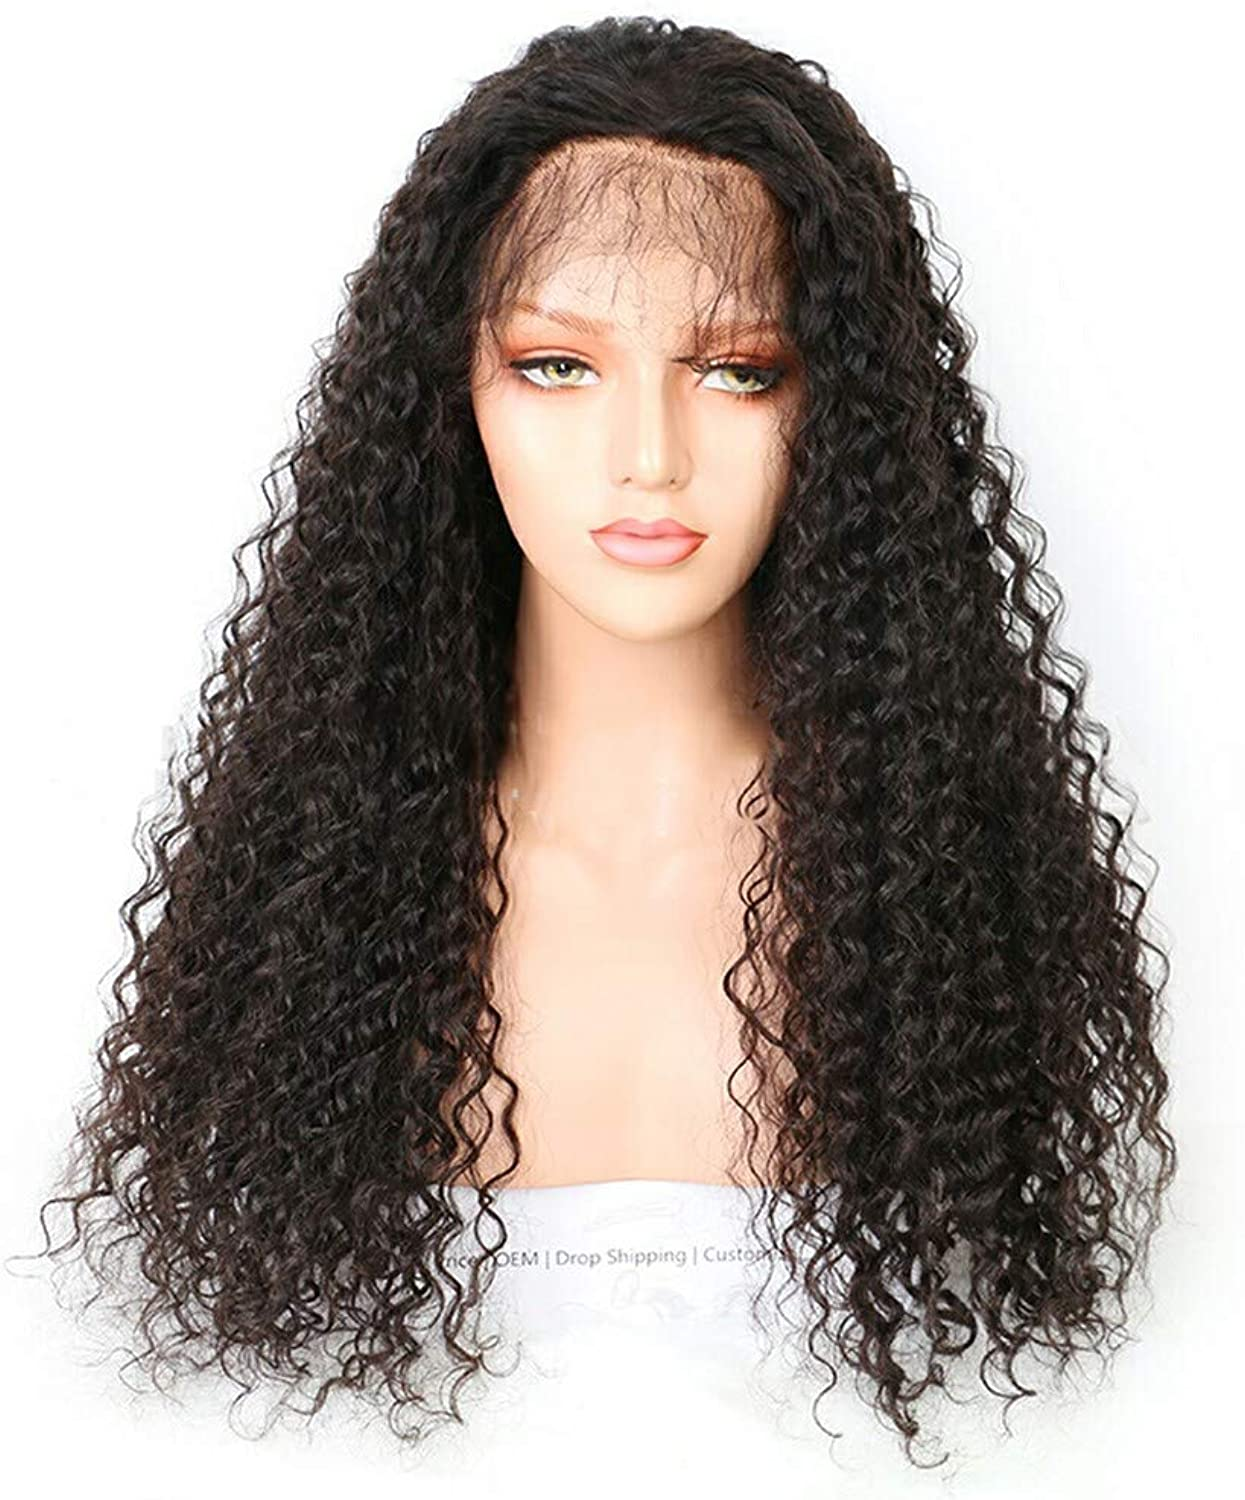 Full Lace Wigs with Baby Hair Body Wave Glueless Wavy 360 Lace Wig Pre Plucked Natural Hairline Virgin Human Hair Wigs for Black Women 150% Density